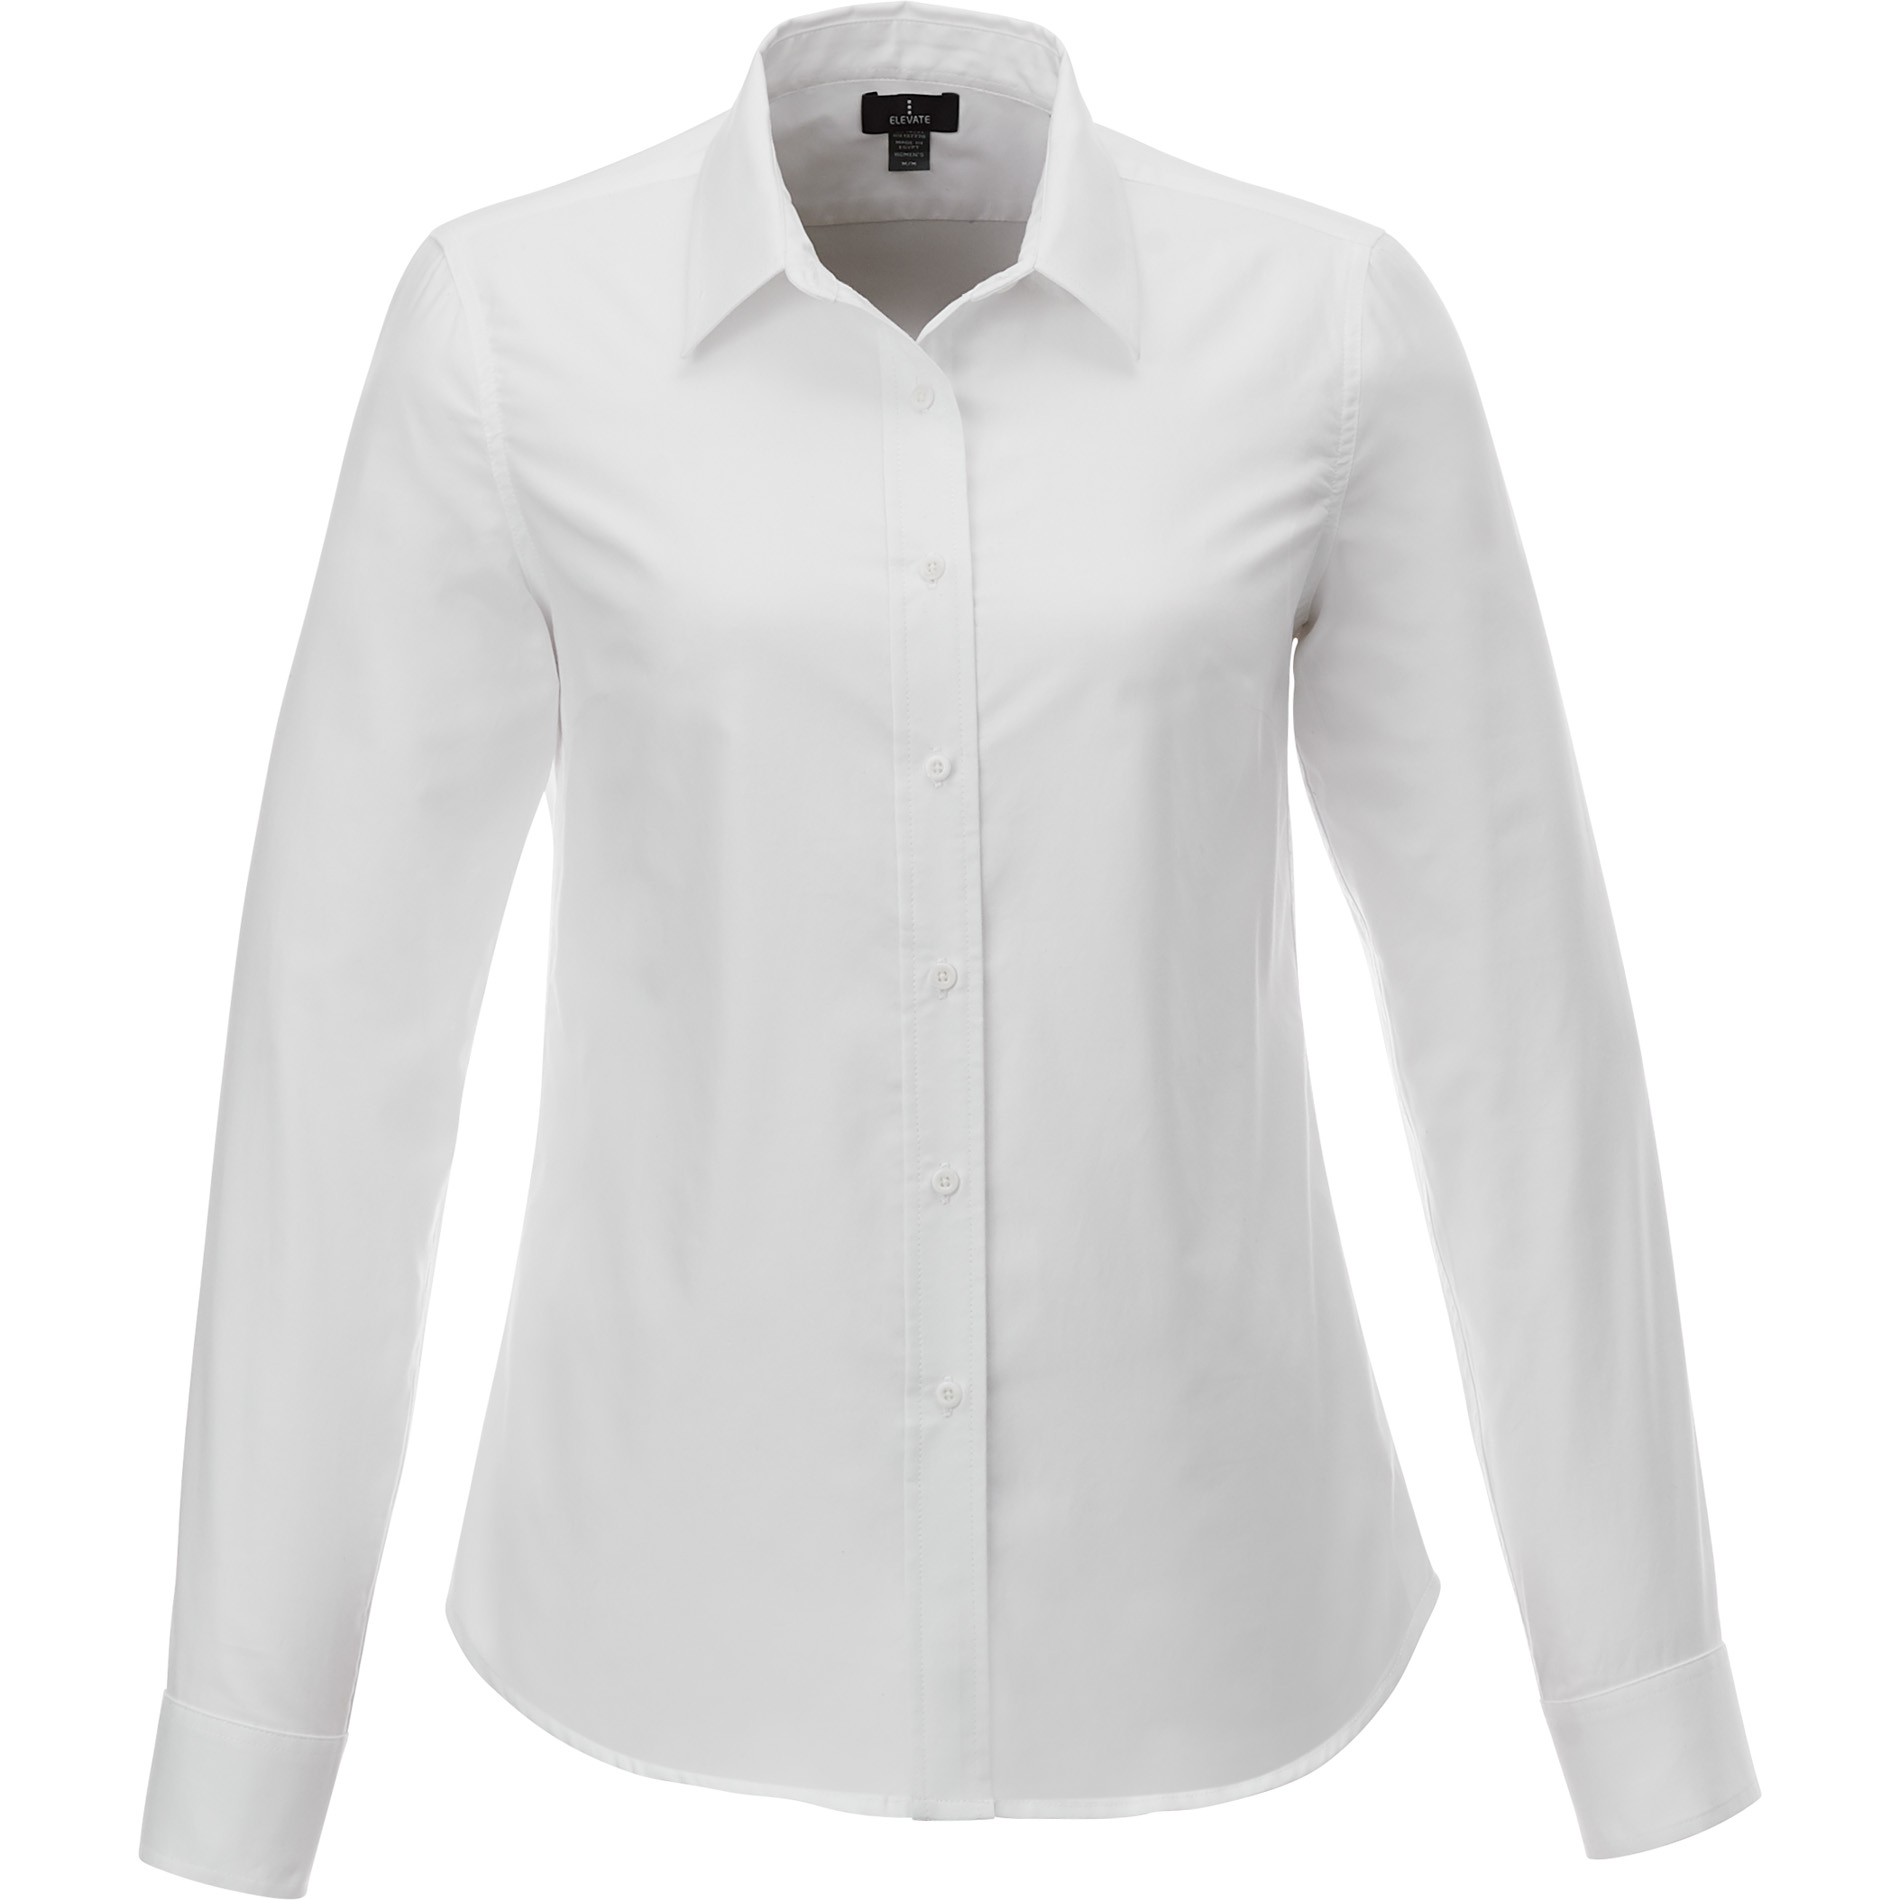 Elevate TM97701 - W-IRVINE Oxford LS Shirt